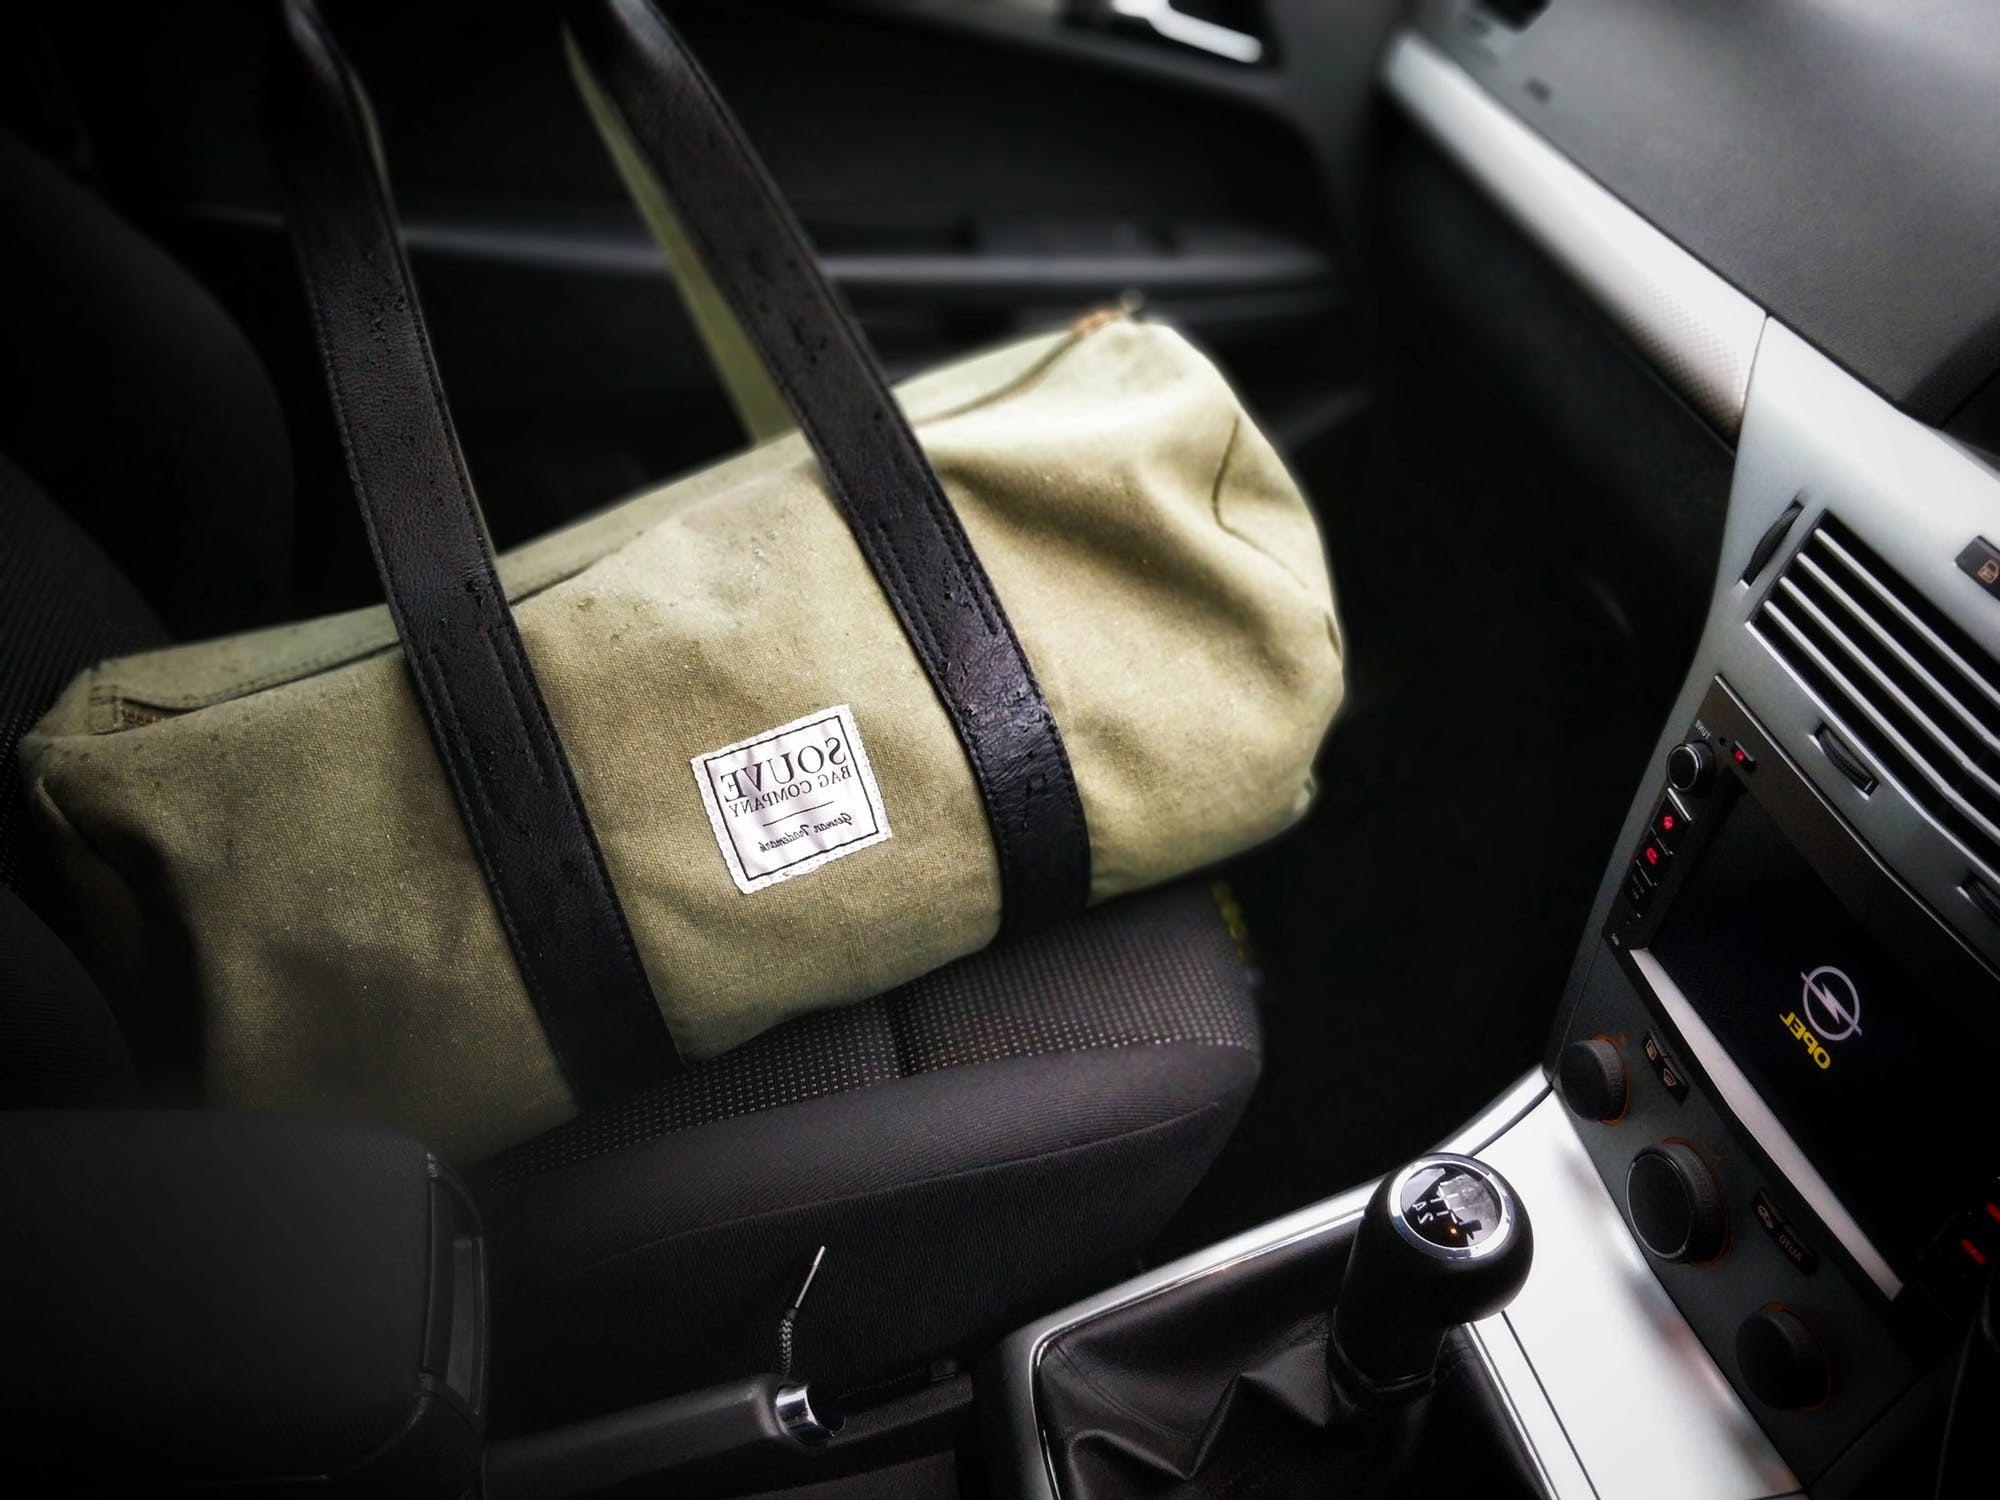 Gym bag on the passenger seat of a car